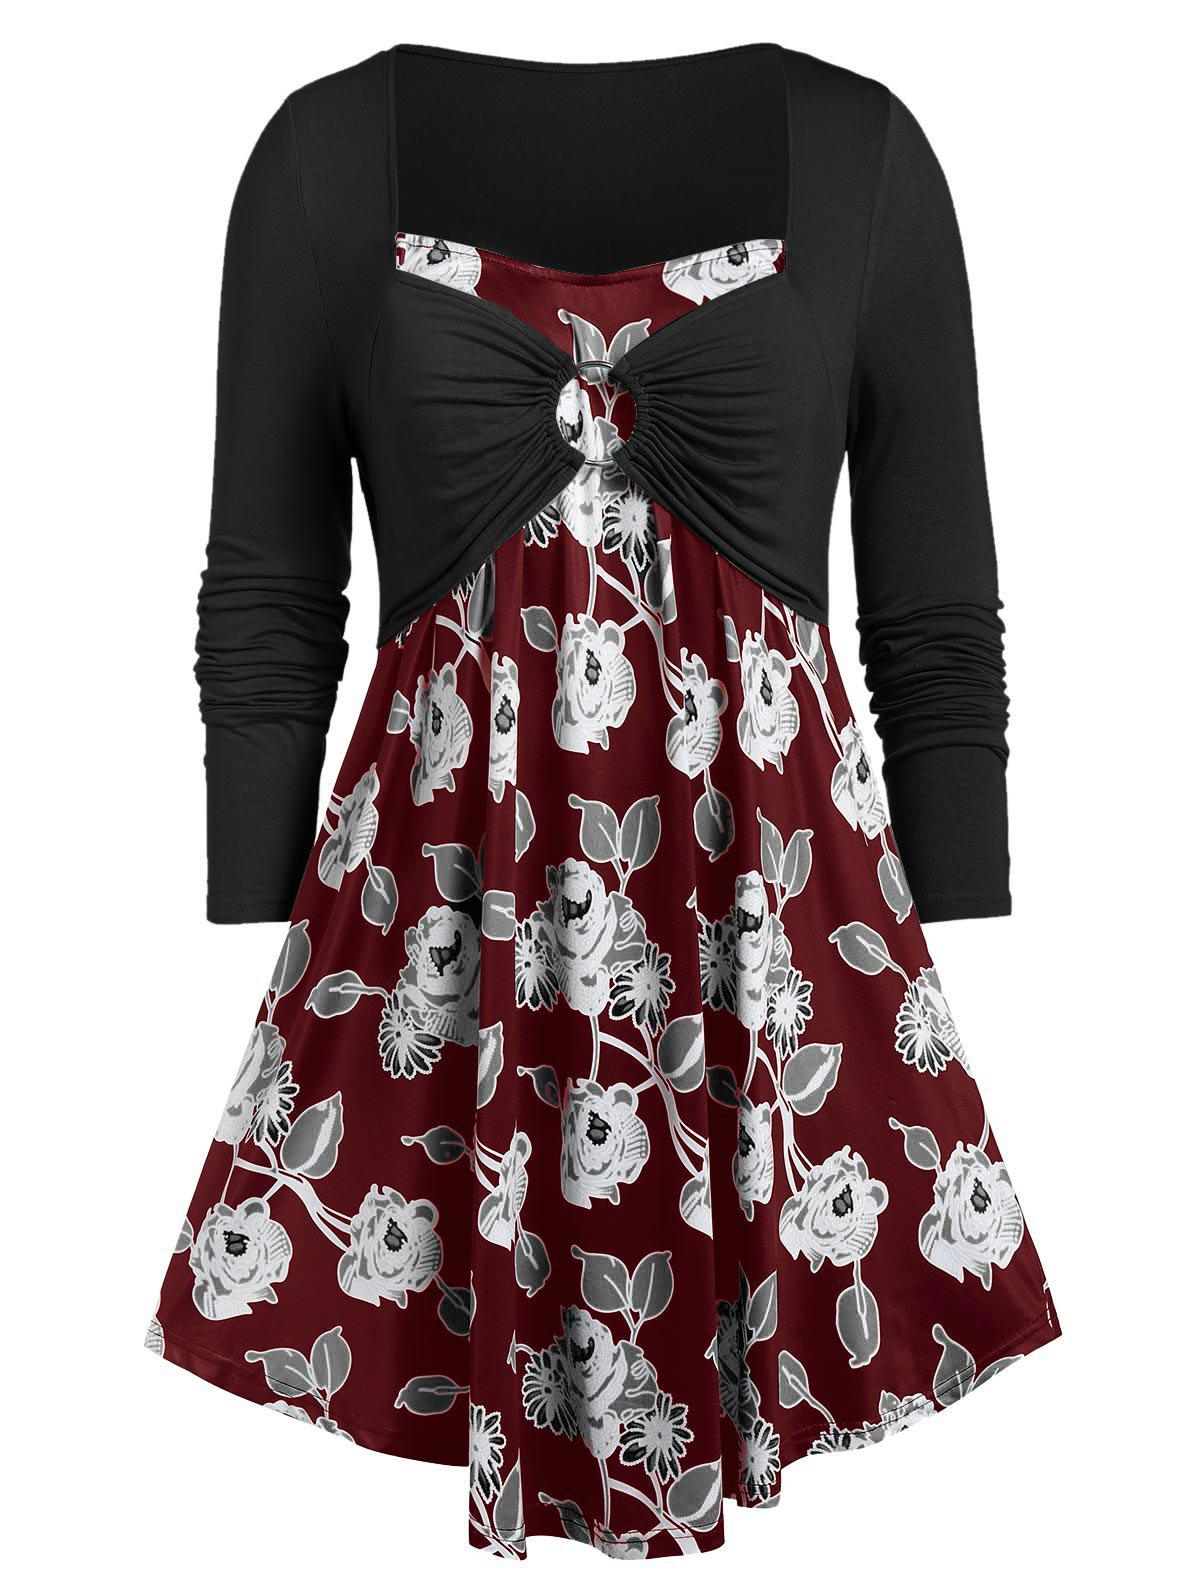 Plus Size Floral Print Ruched O Ring T-shirt - RED WINE 4X